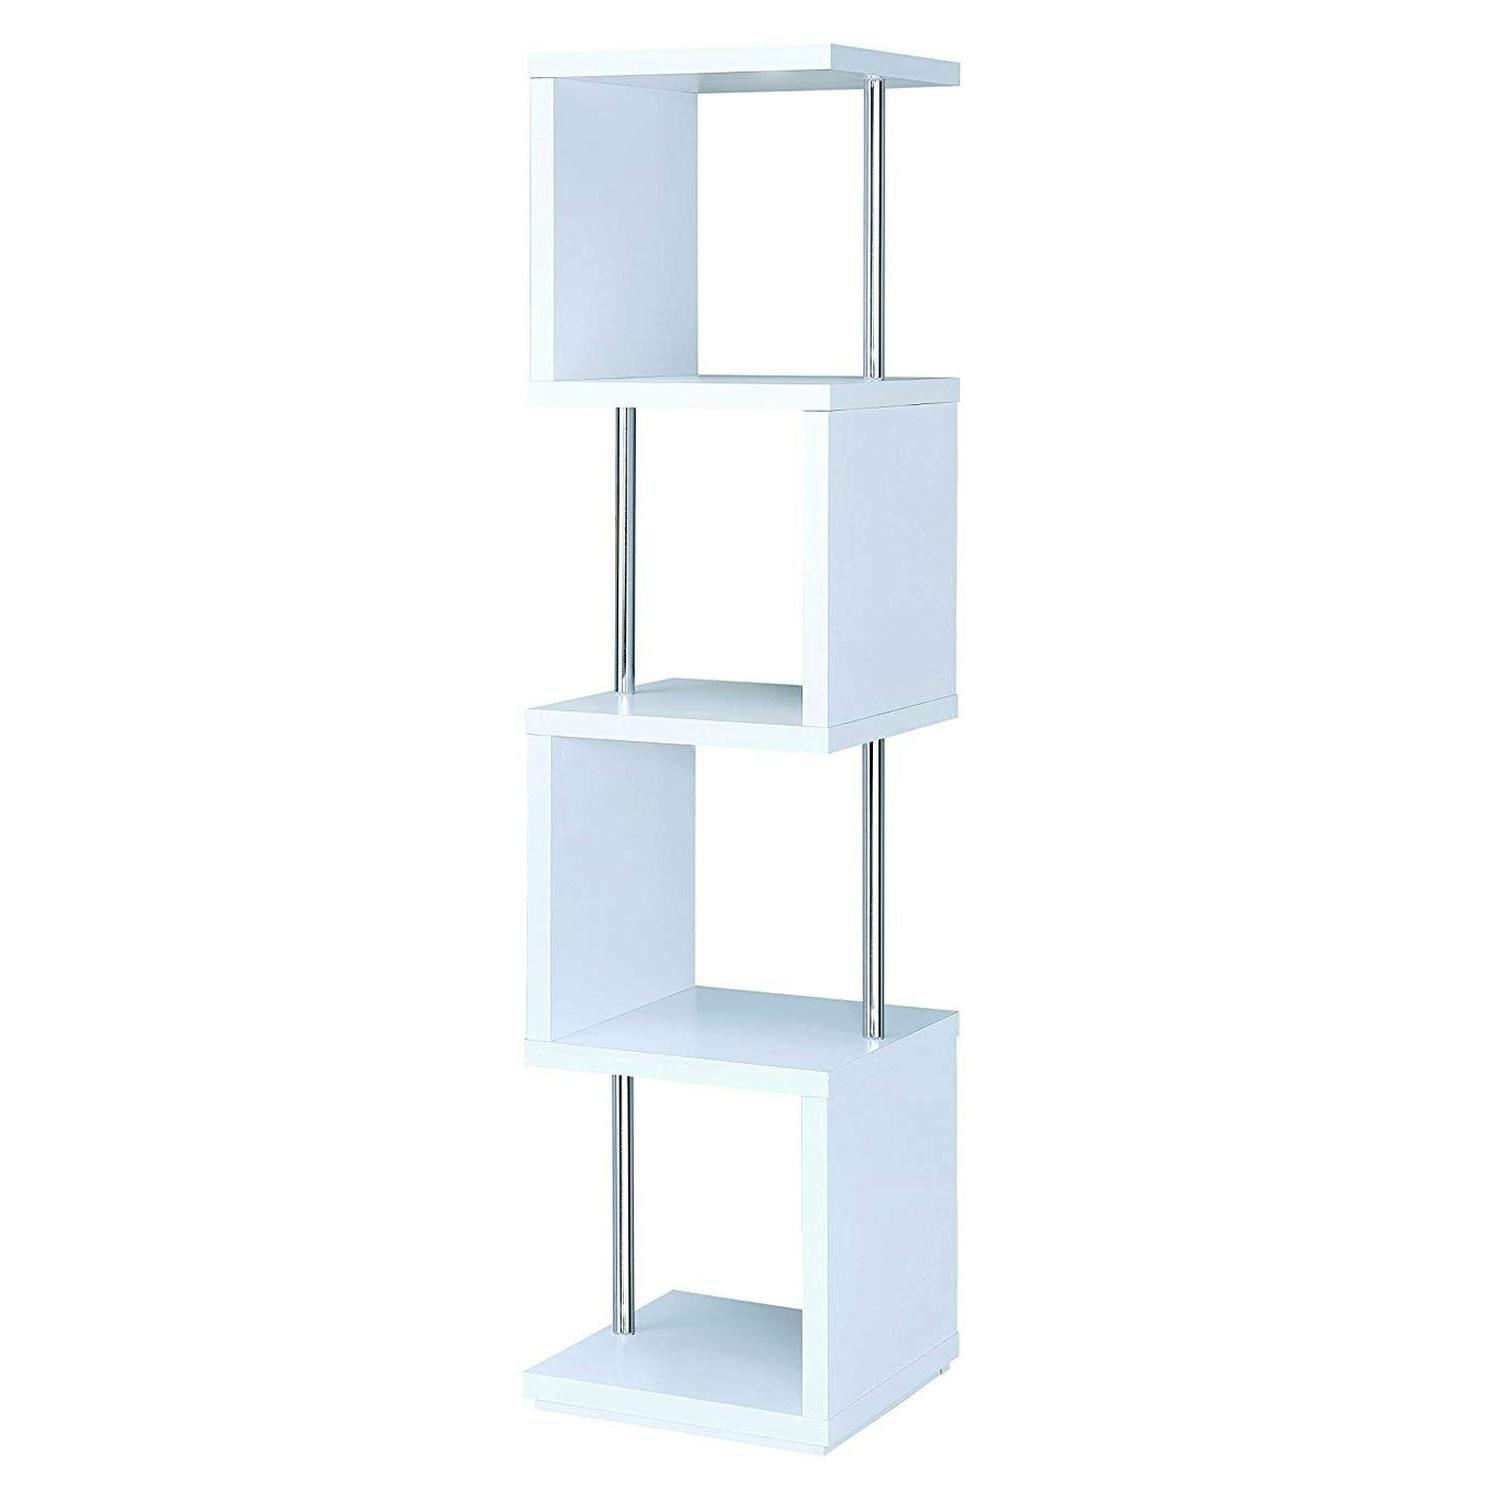 4-Tier White Bookcase w/ Chrome Metal Bar Accents - image-0